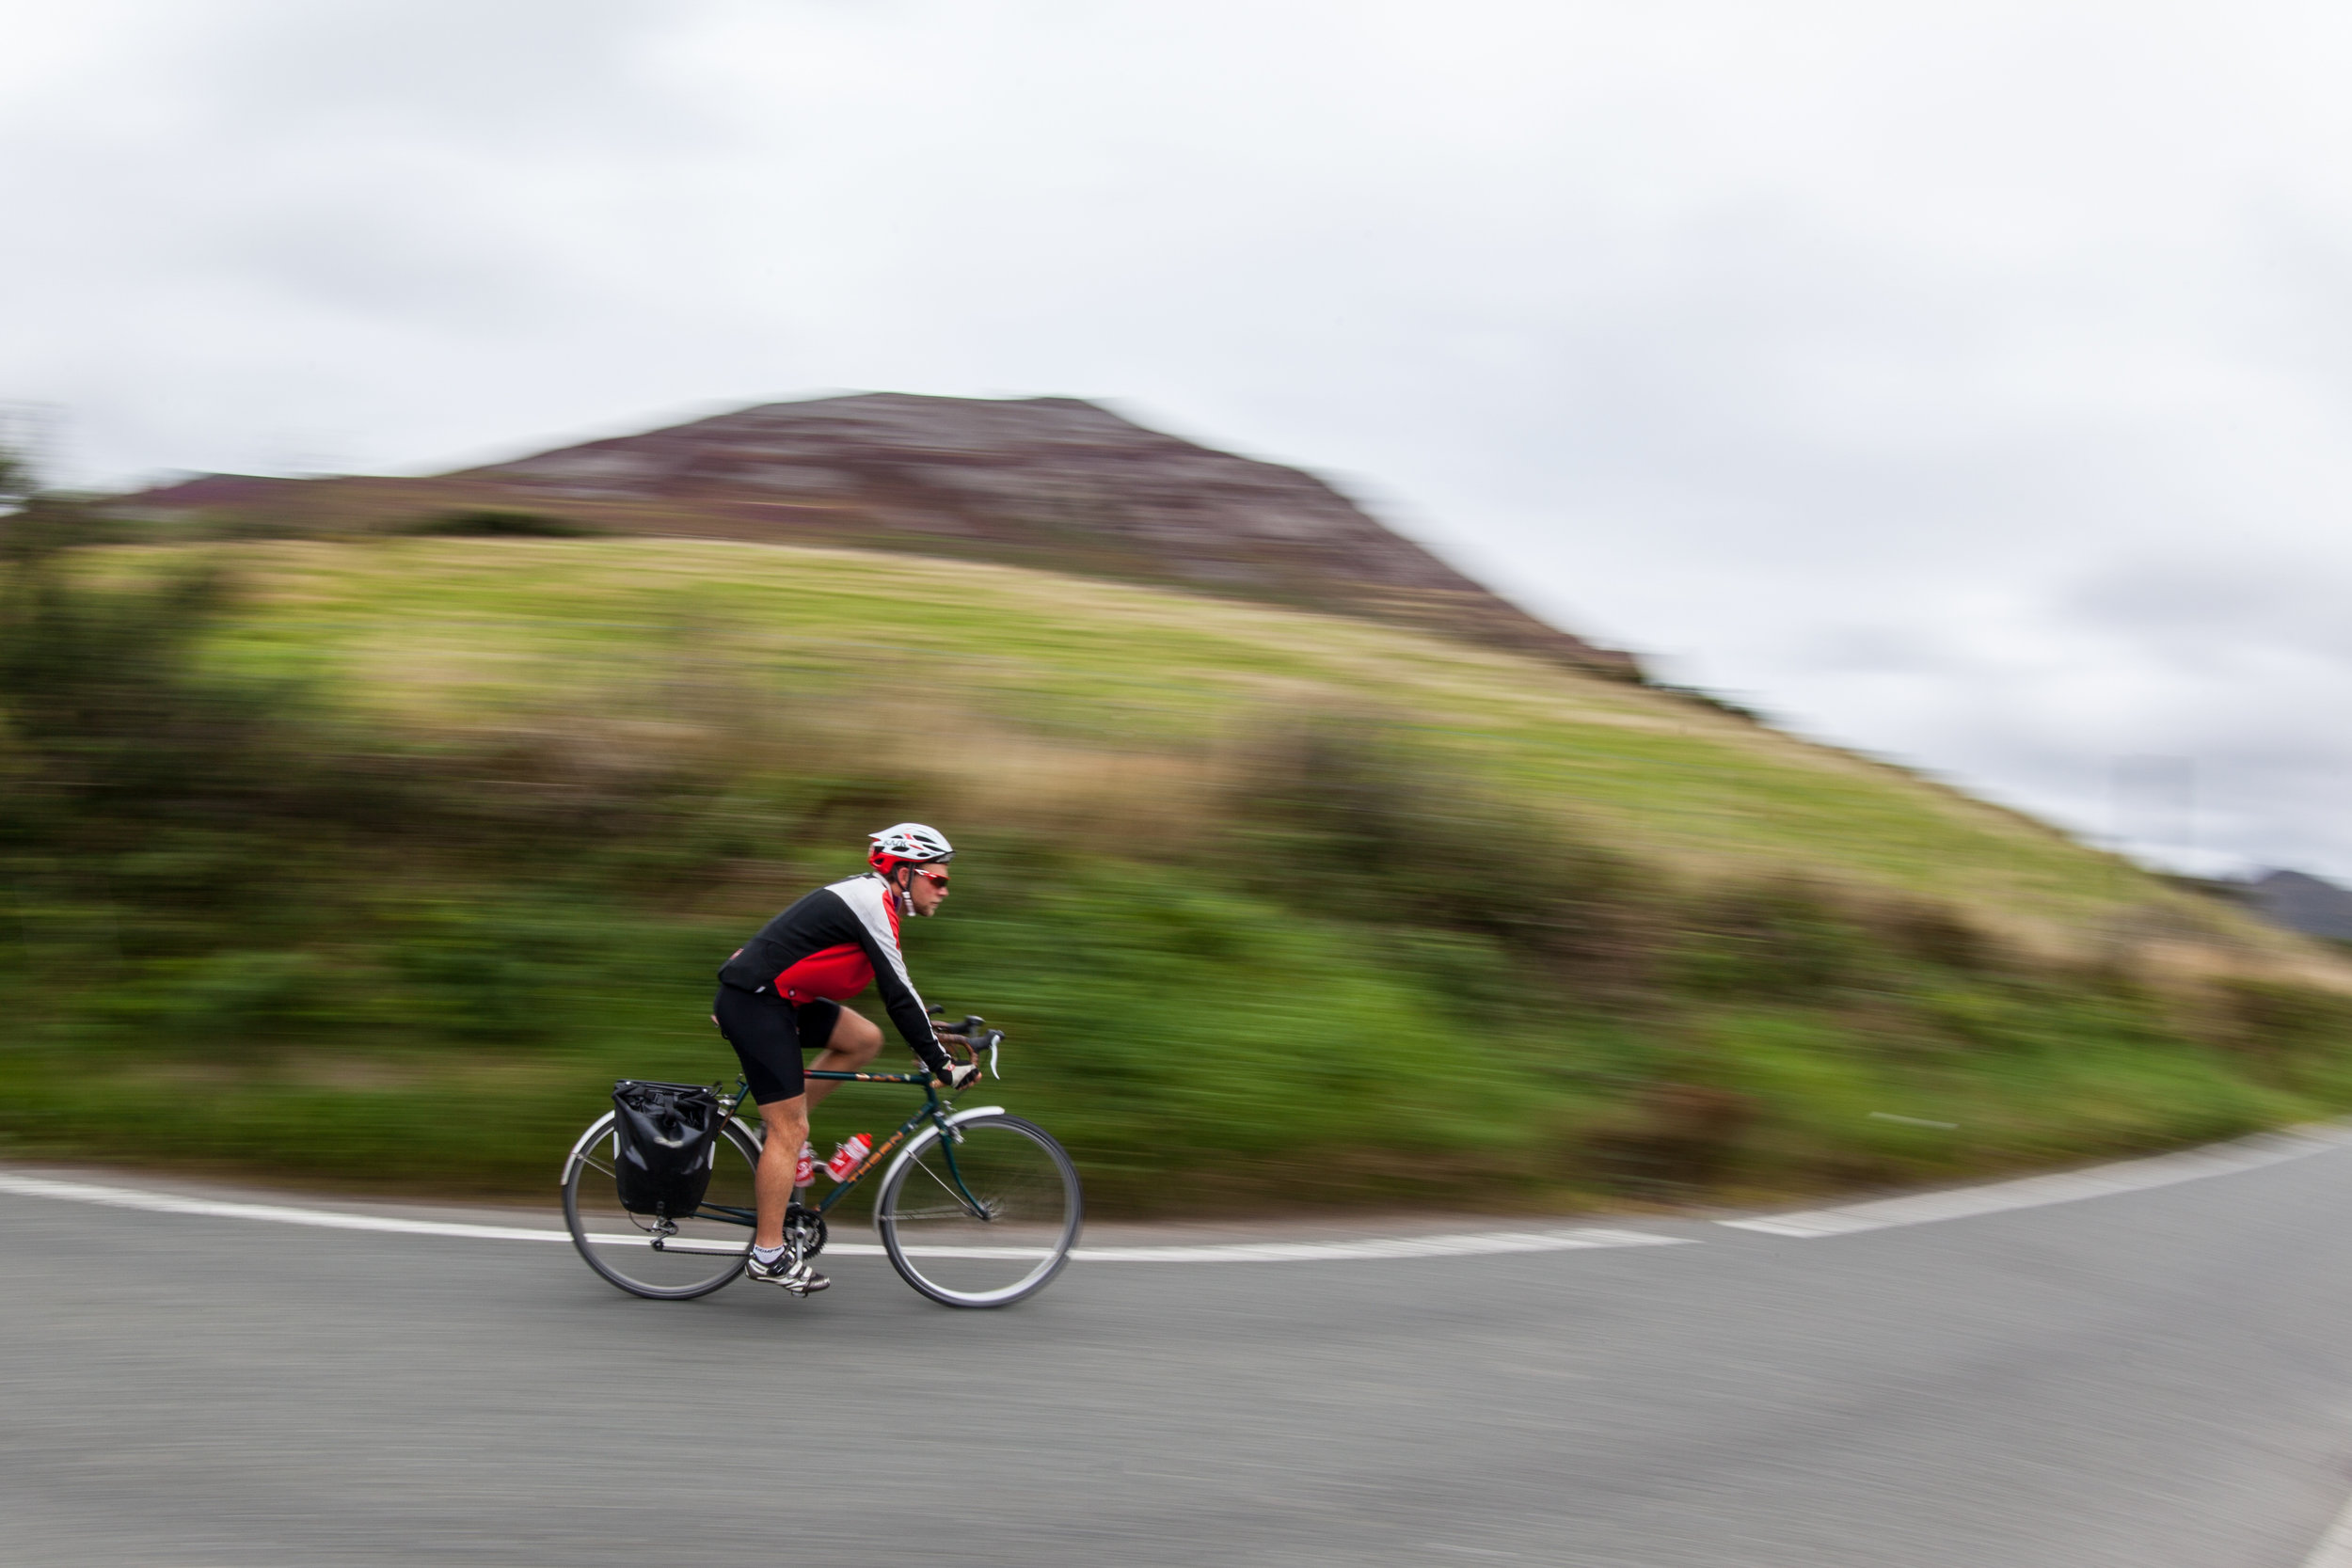 james Cope cycling through Wales on the Countrywide Great Tour.